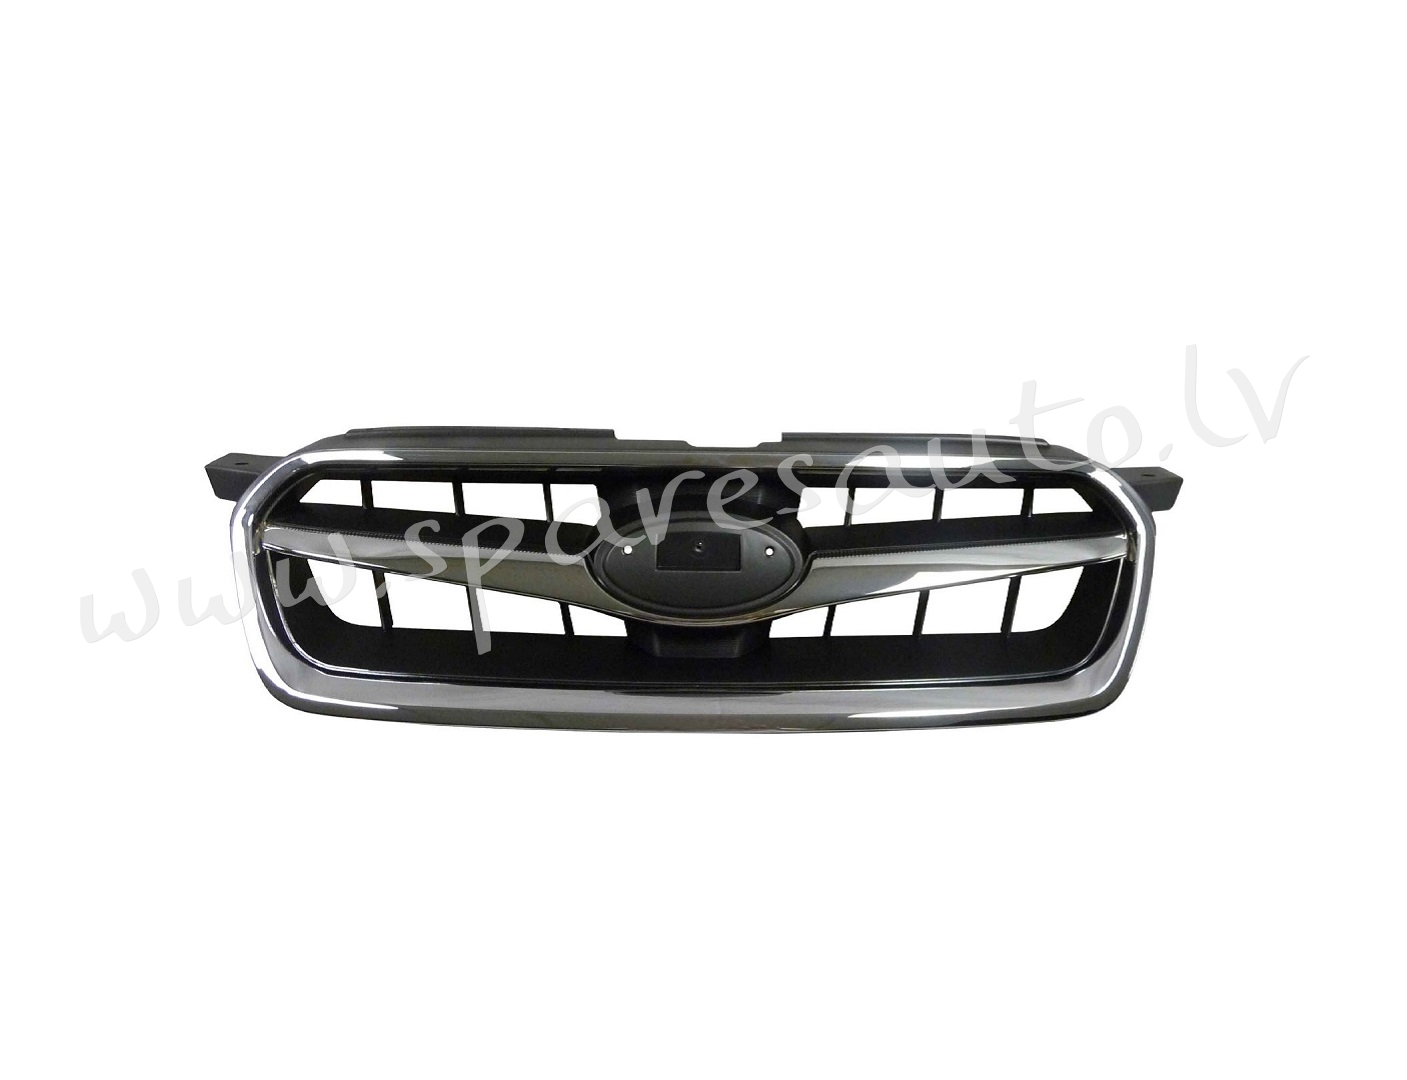 OEM 2018 Subaru Outback Front Grille Assembly Chrome w// Emblem NEW 91121AL17B